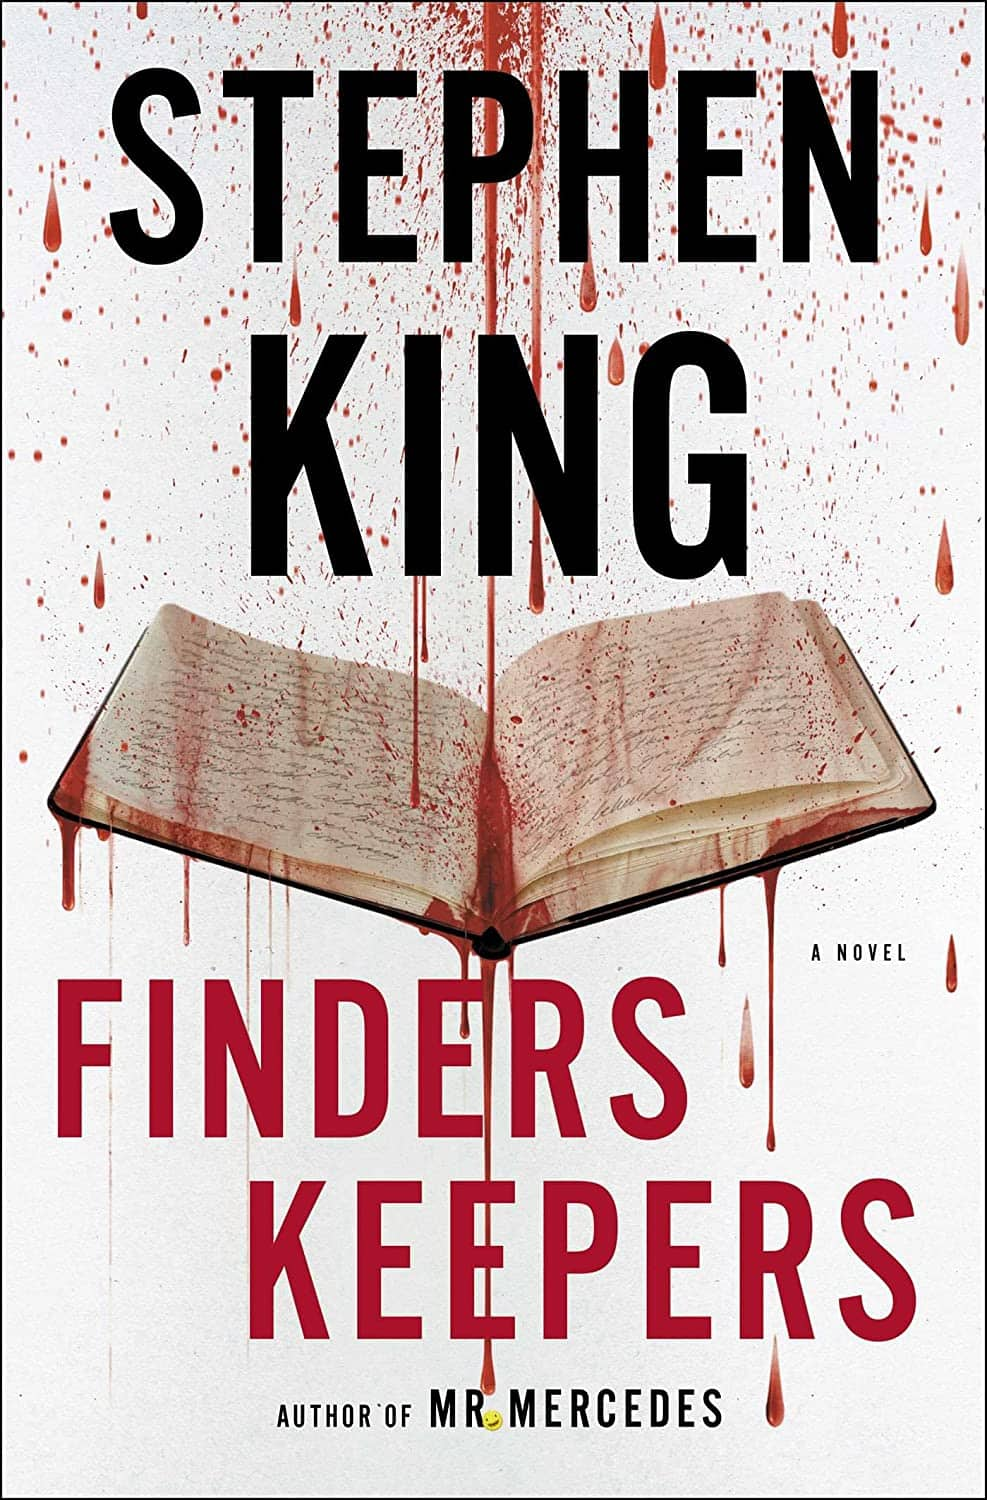 Kindle Stephen King eBook: Finders Keepers (The Bill Hodges Trilogy Book 2) - Amazon, Google Play, B&N Nook, Apple Books and Kobo - $3.99